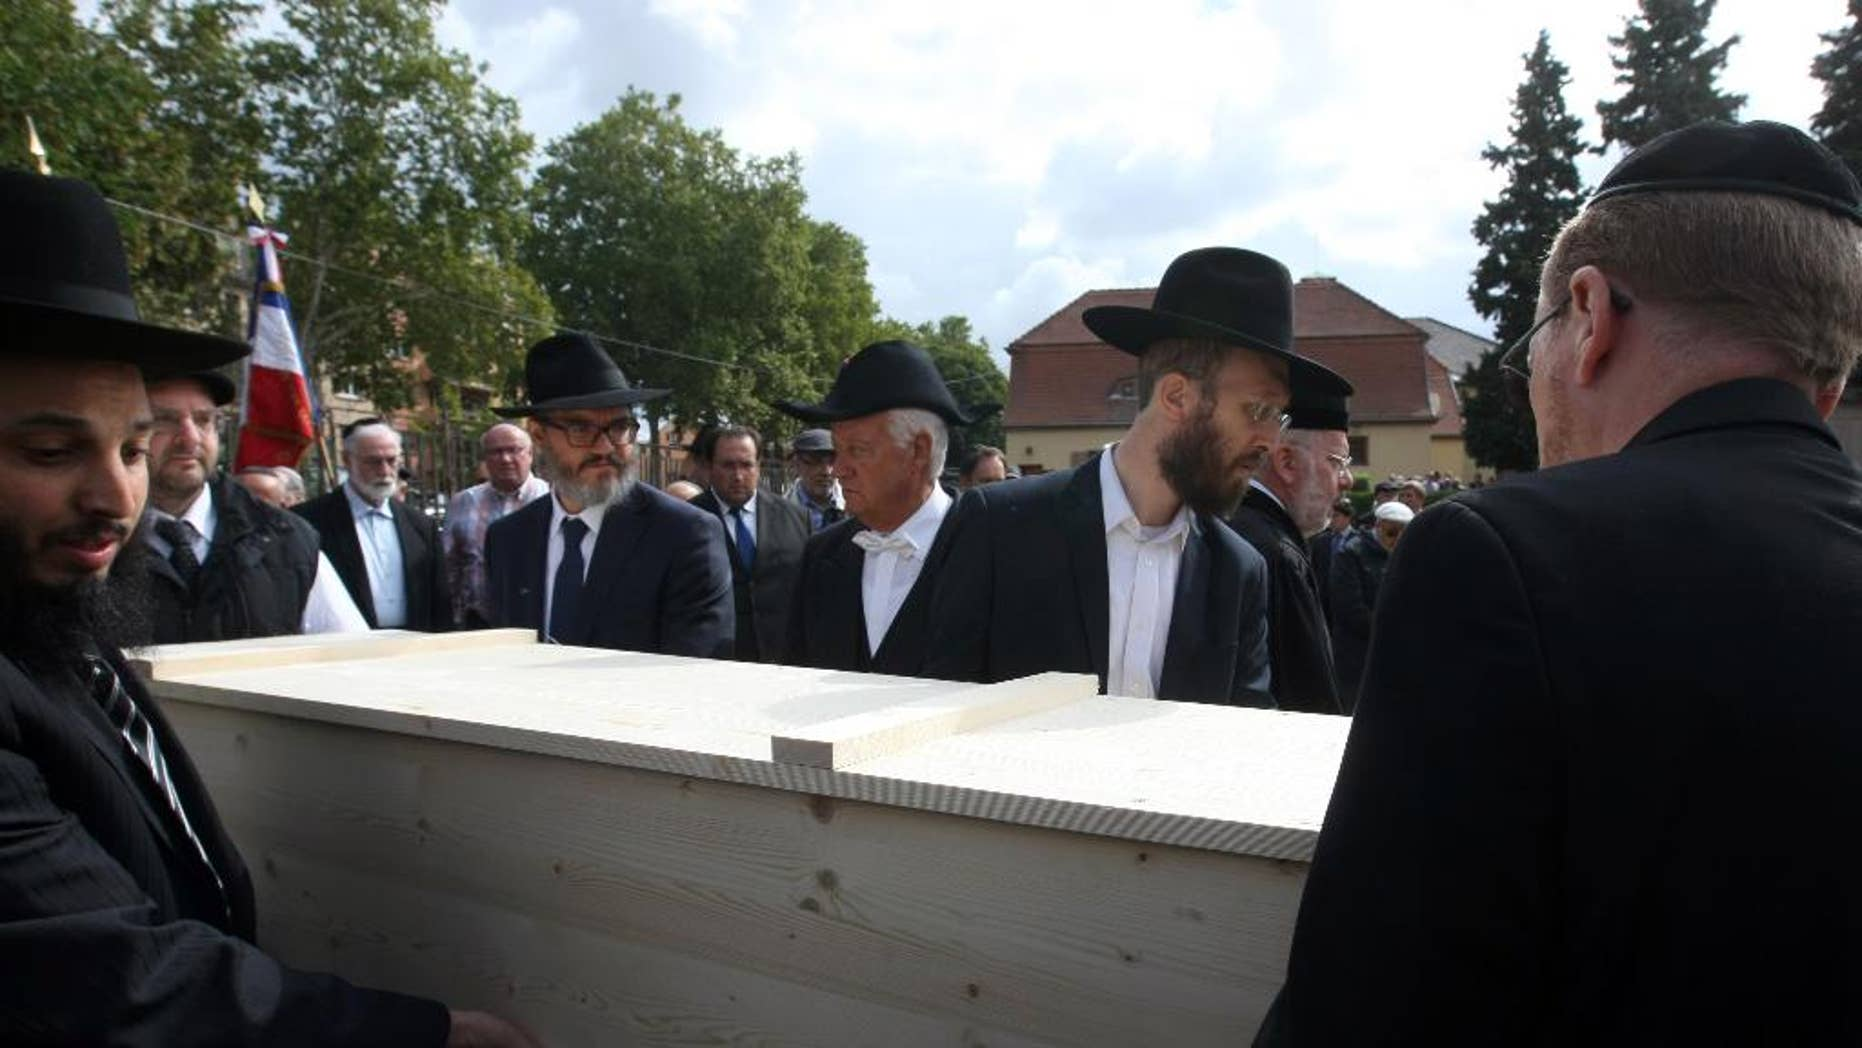 Members of the Jewish community of Strasbourg carry a coffin bearing the remains of a Jewish victim of Nazi anatomist August Hirt, during a ceremony at the Jewish cemetery of Cronenbourg, eastern France, Sunday, Sept. 6, 2015. The remains of Holocaust victims kept for decades in a French medical school were laid to rest on Sunday. (AP Photo/Christian Lutz)